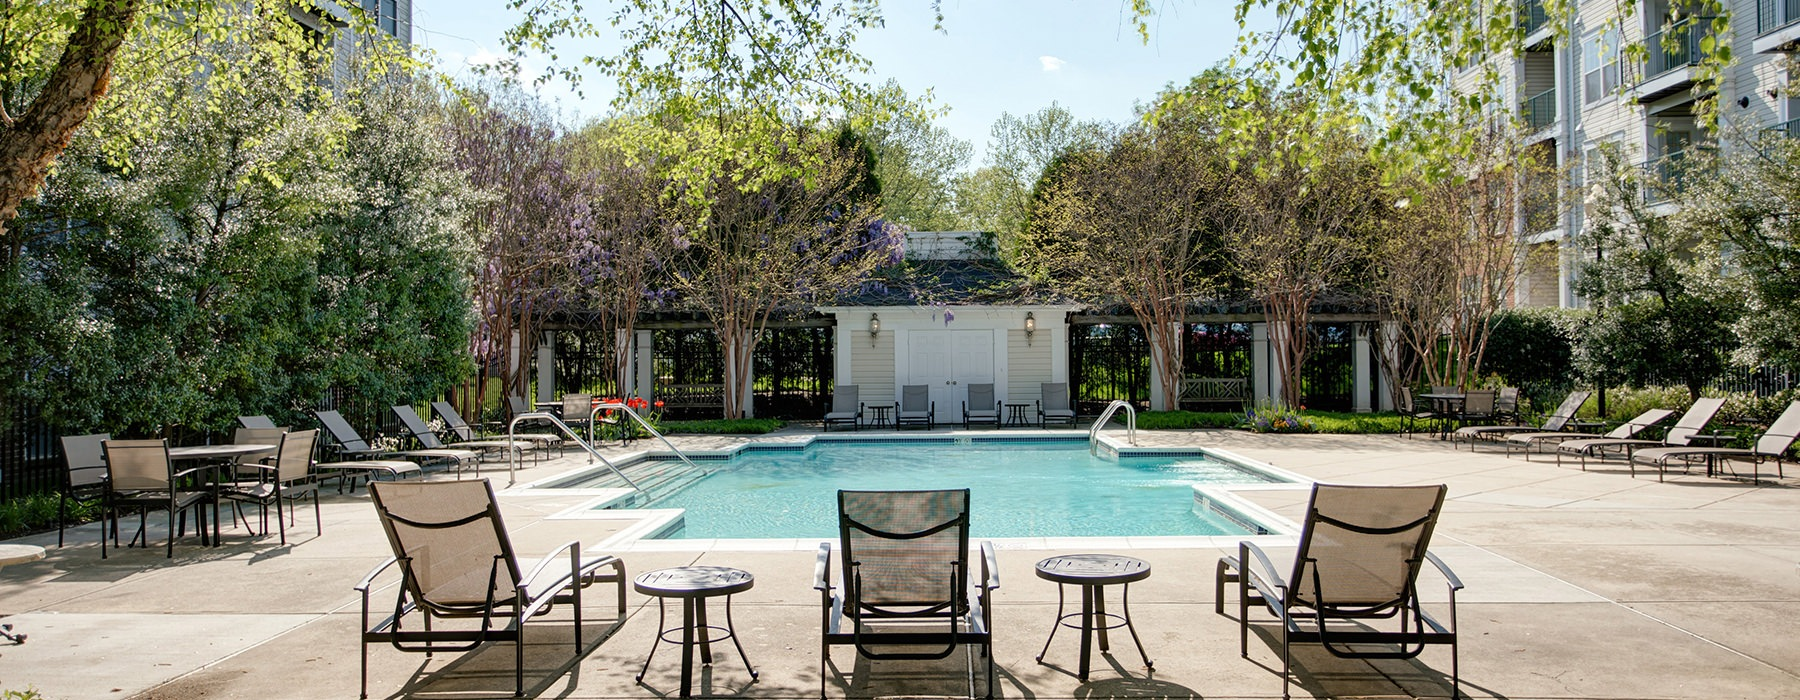 pool with lounge chairs and trees